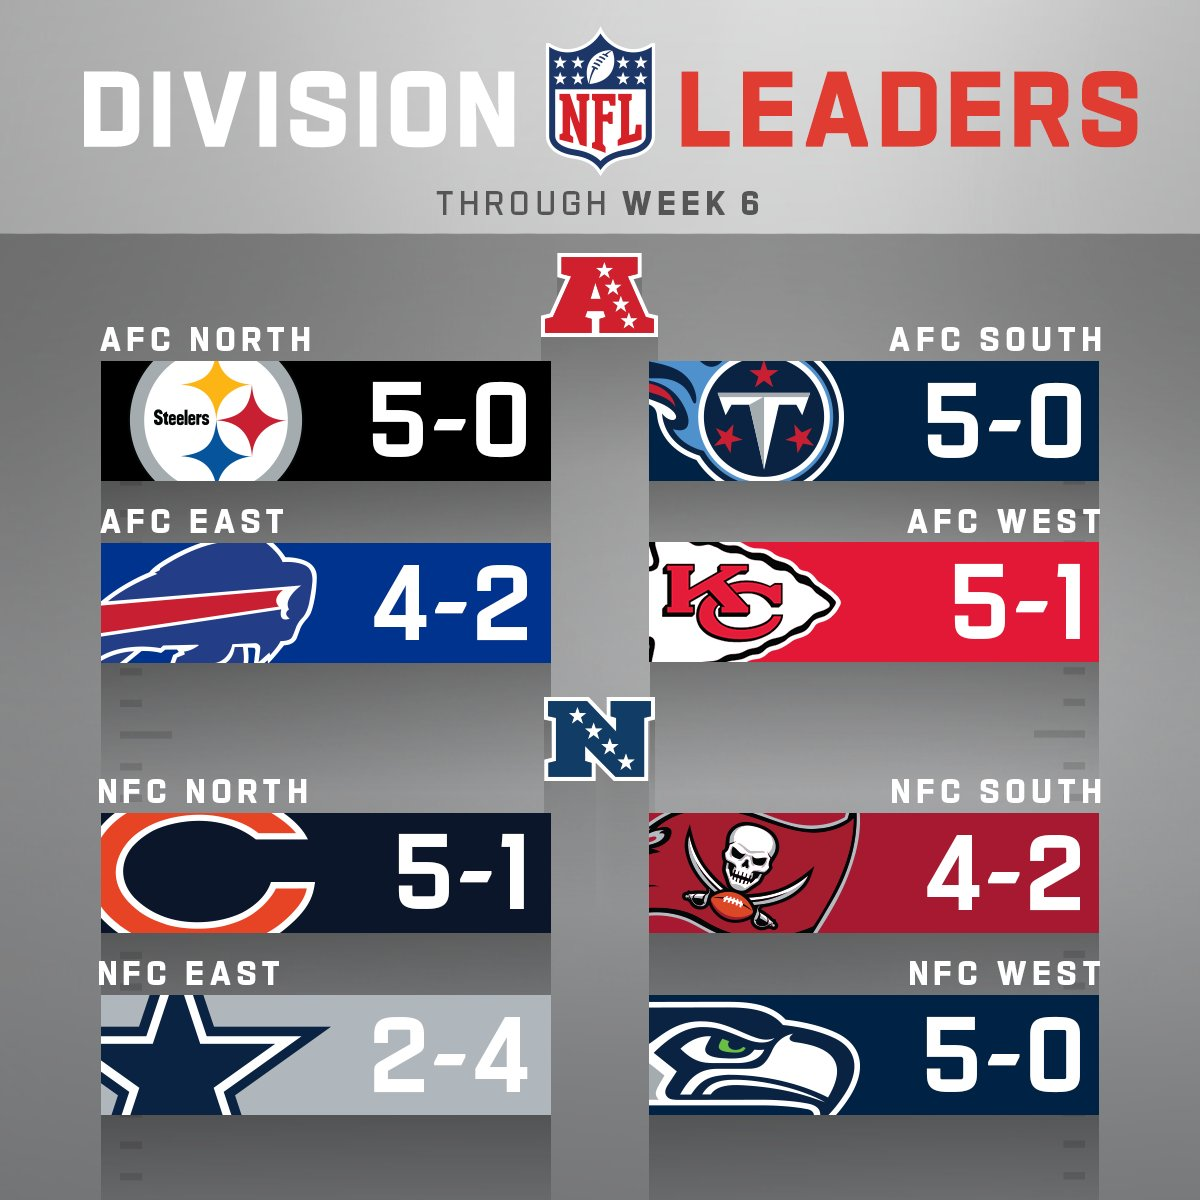 Division Leaders through Week 6!